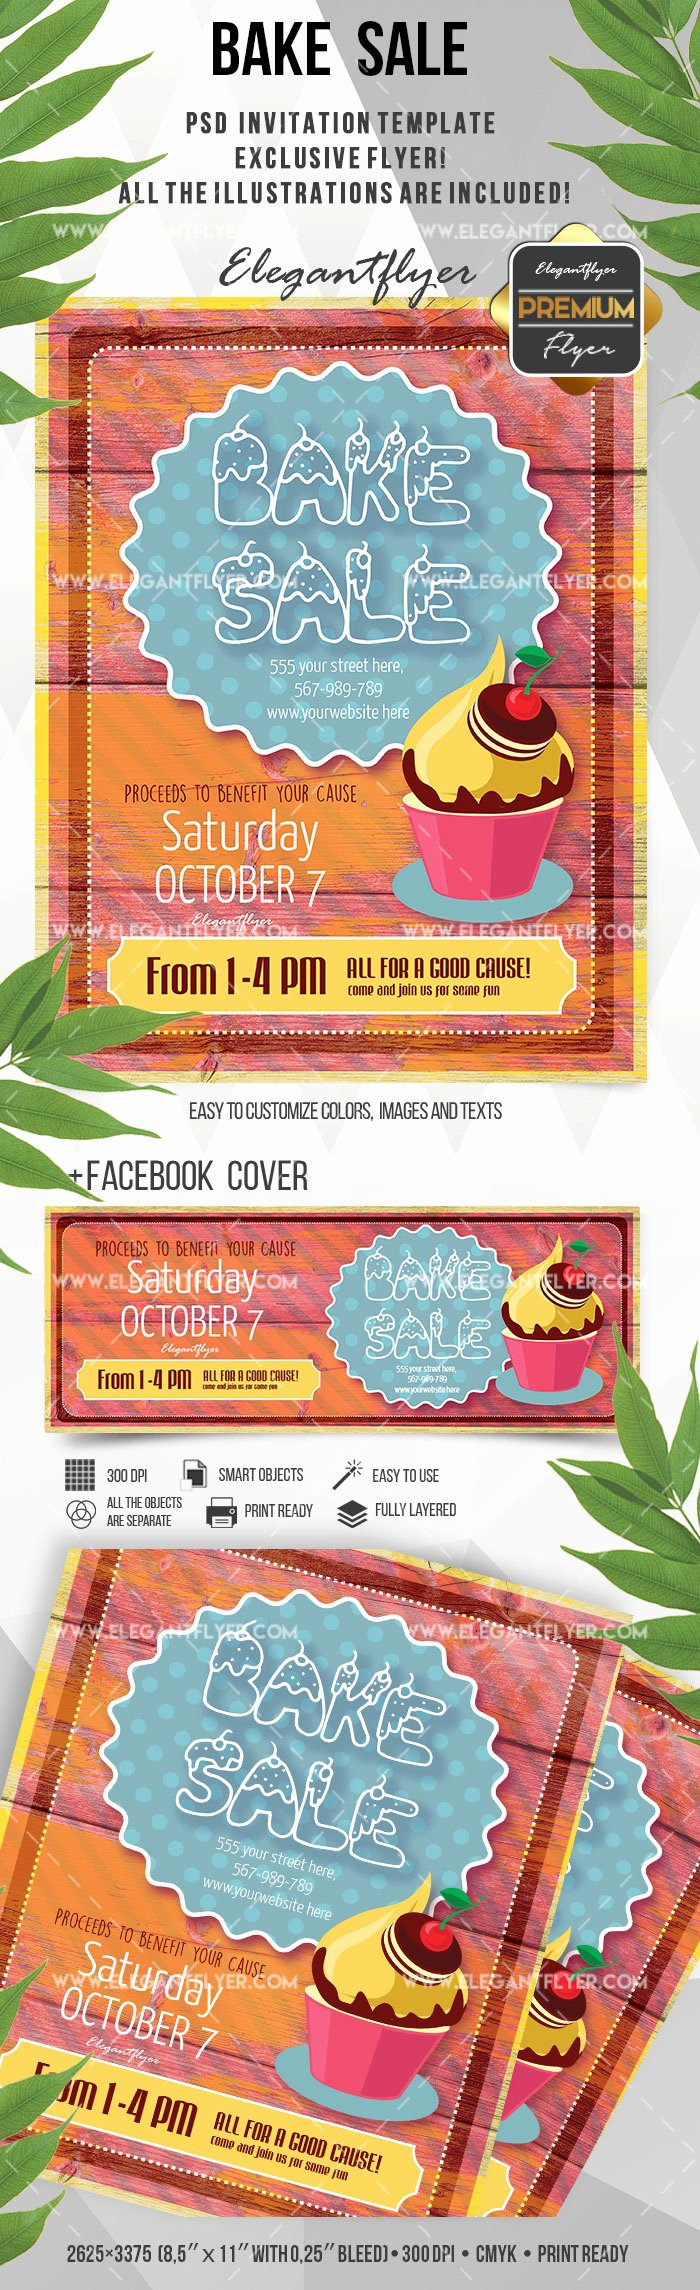 Bake Sale Flyer Template – by Elegantflyer